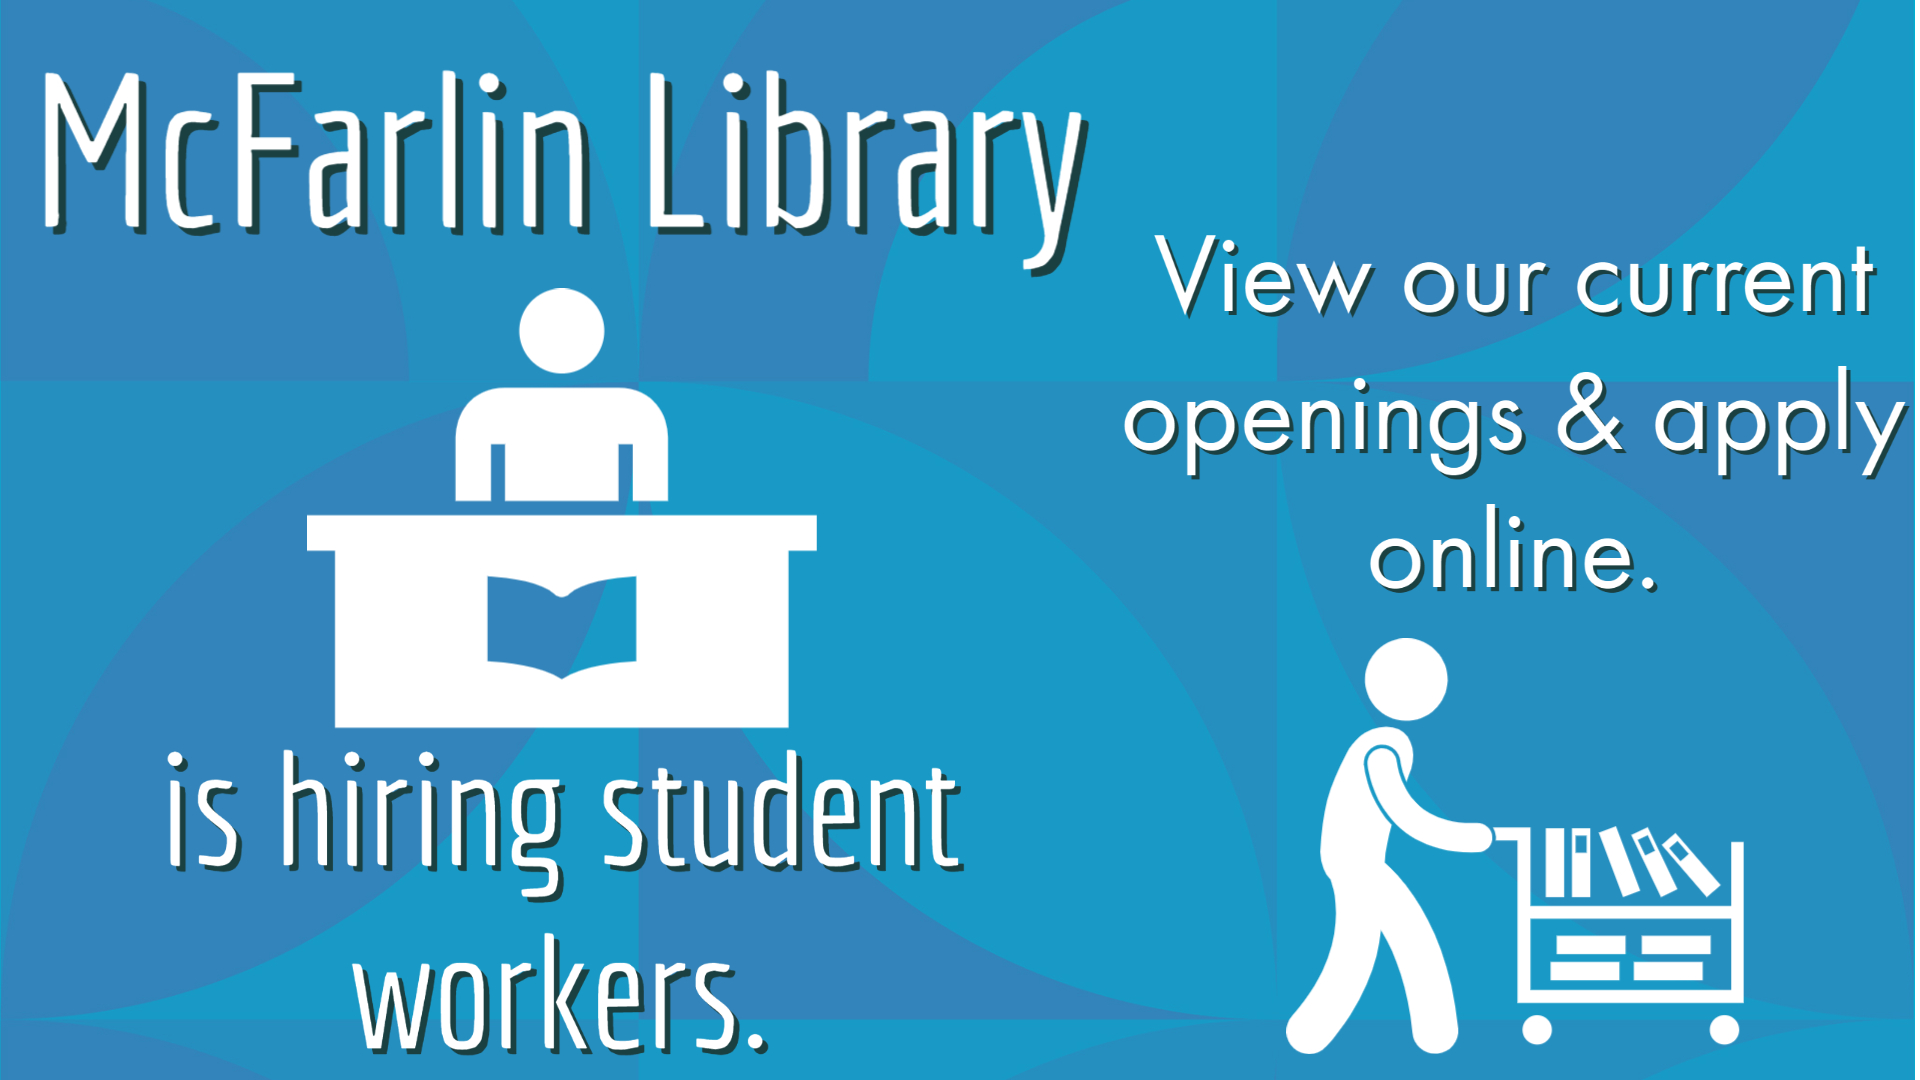 View employment opportunities for students at McFarlin Library.